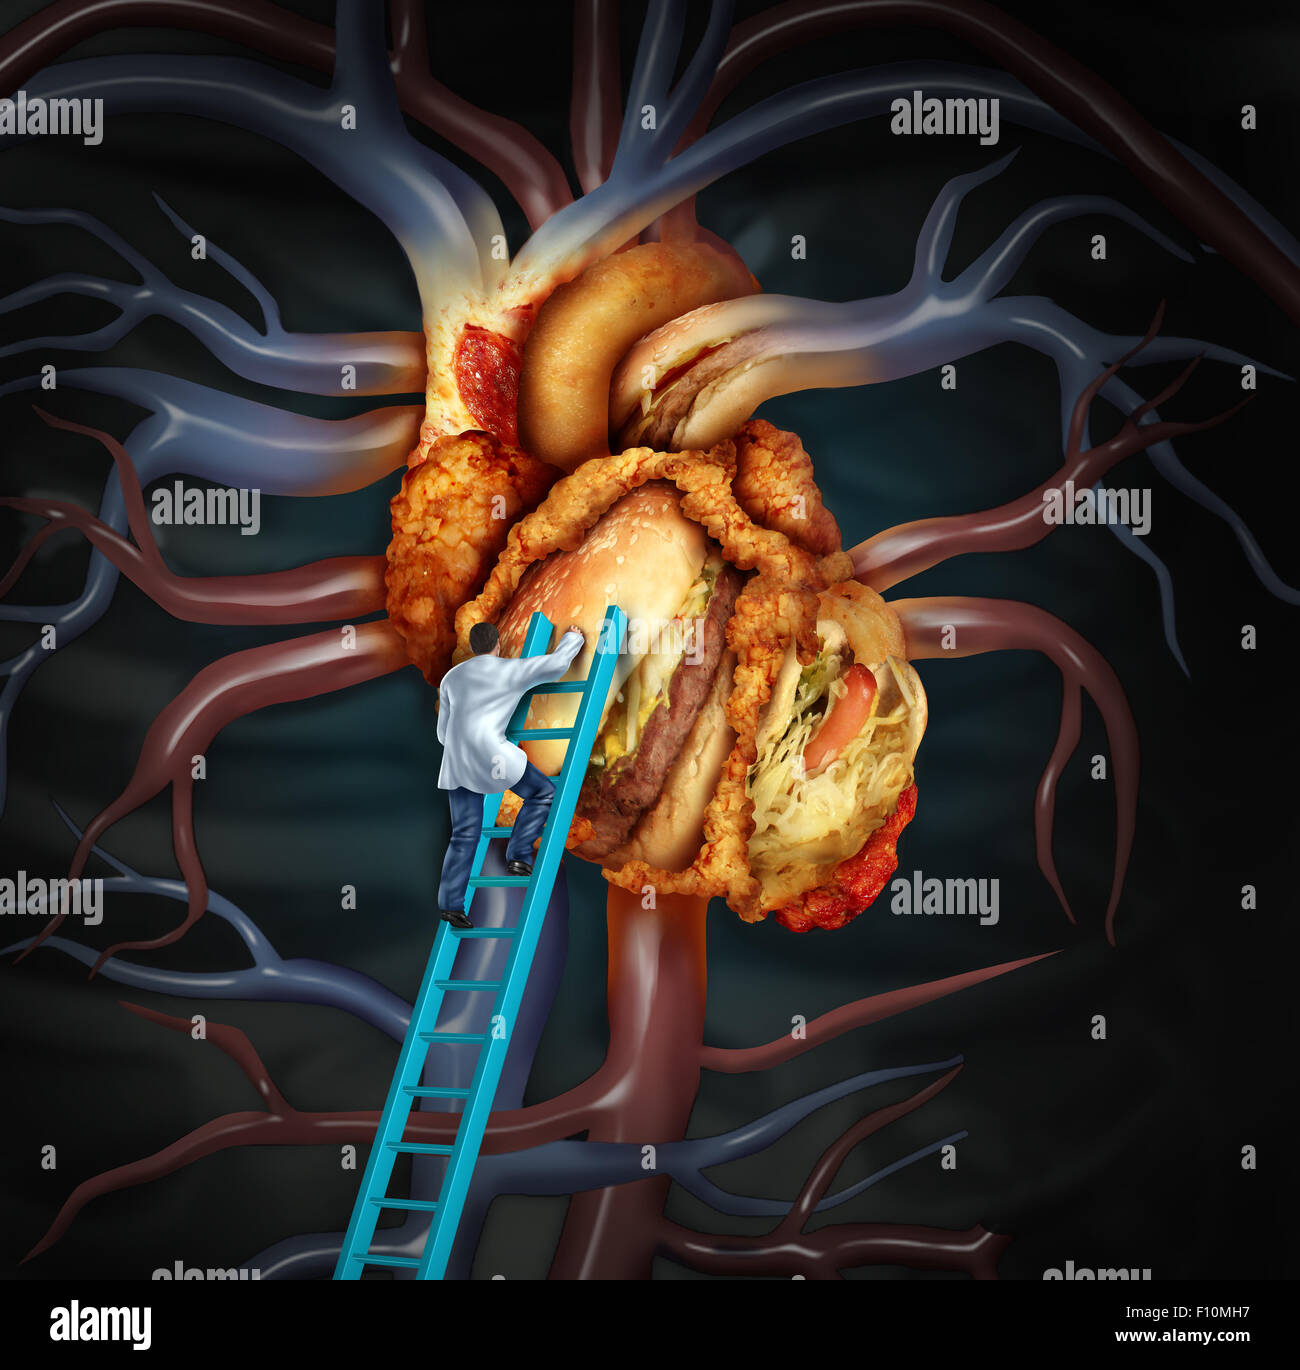 High cholesterol treatment and medical therapy as a doctor on a high cholesterol treatment and medical therapy as a doctor on a ladder cleaning a problem heart made of greasy fast food or a surgeon removing fat buildup biocorpaavc